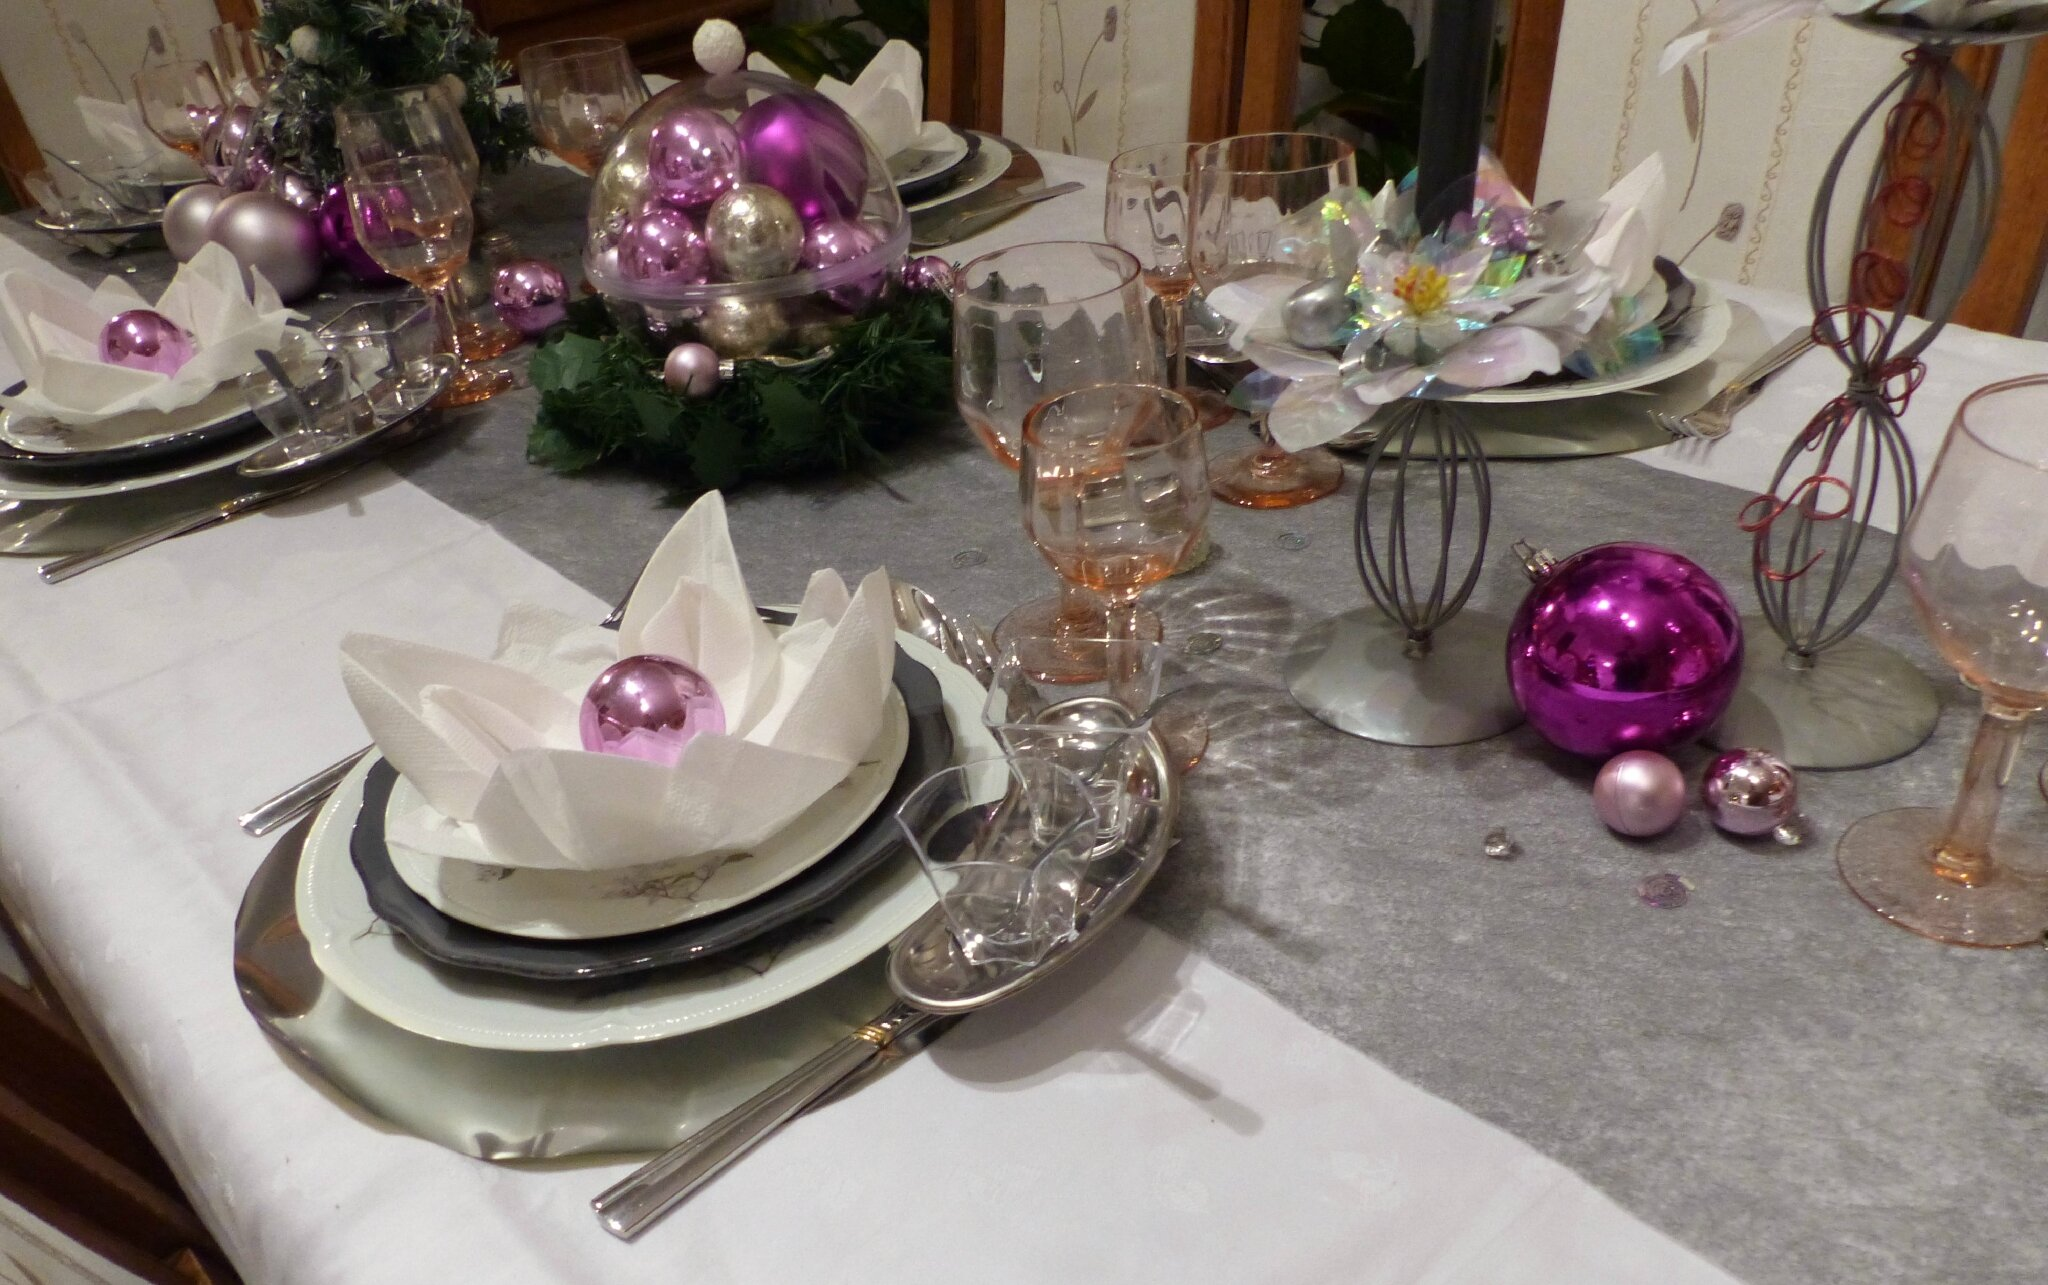 Table de no l rose et gris argent cuill re gourmande for Decoration de table de noel argent